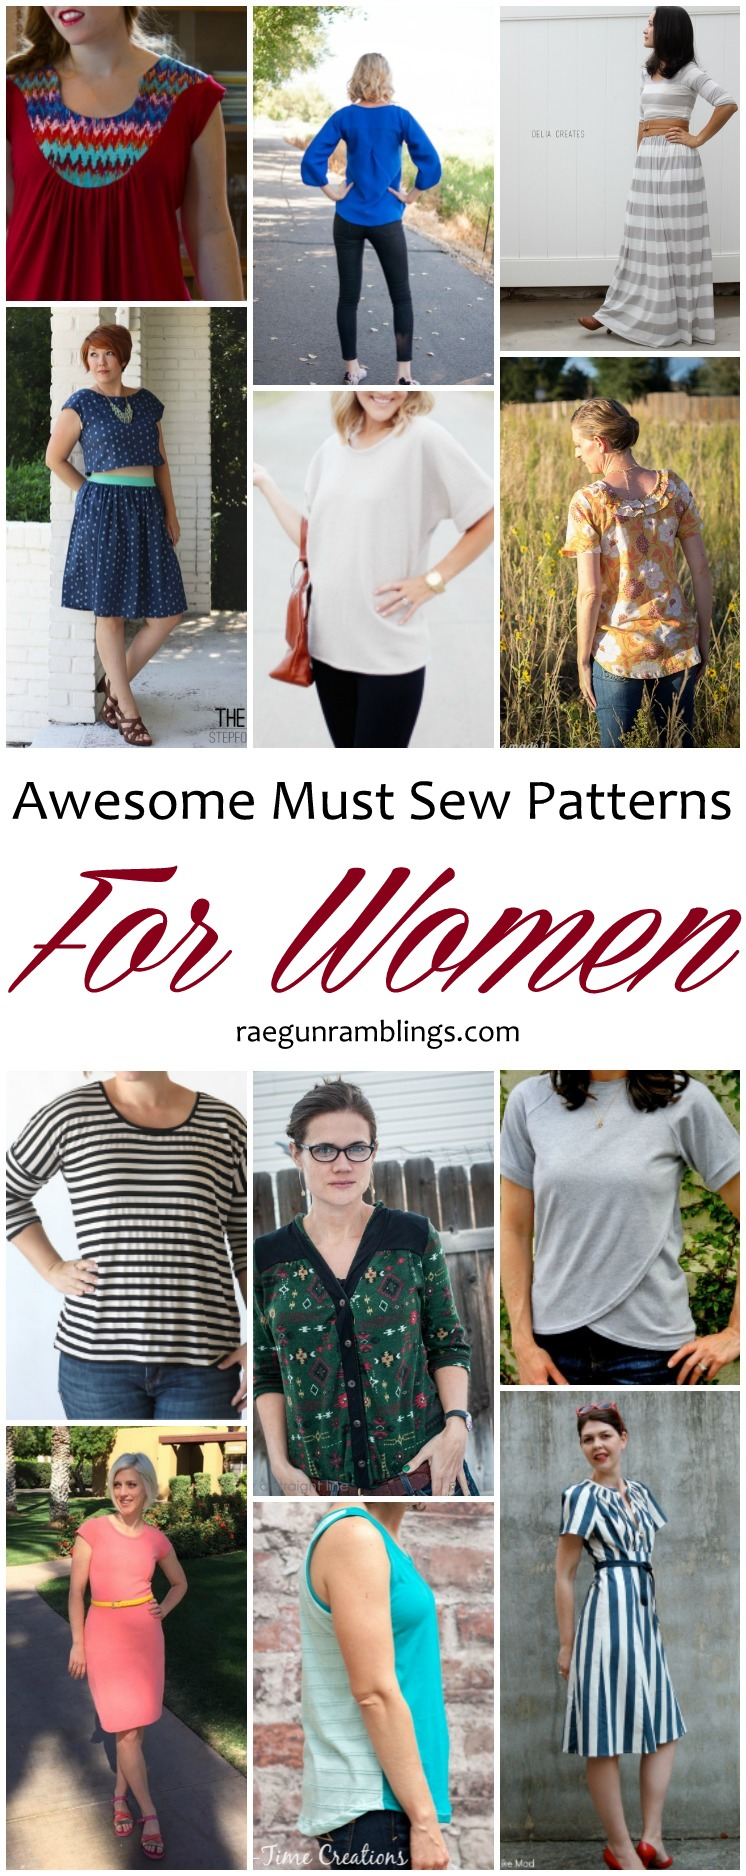 12 must sew patterns for women. Great flattering DIY fashion.